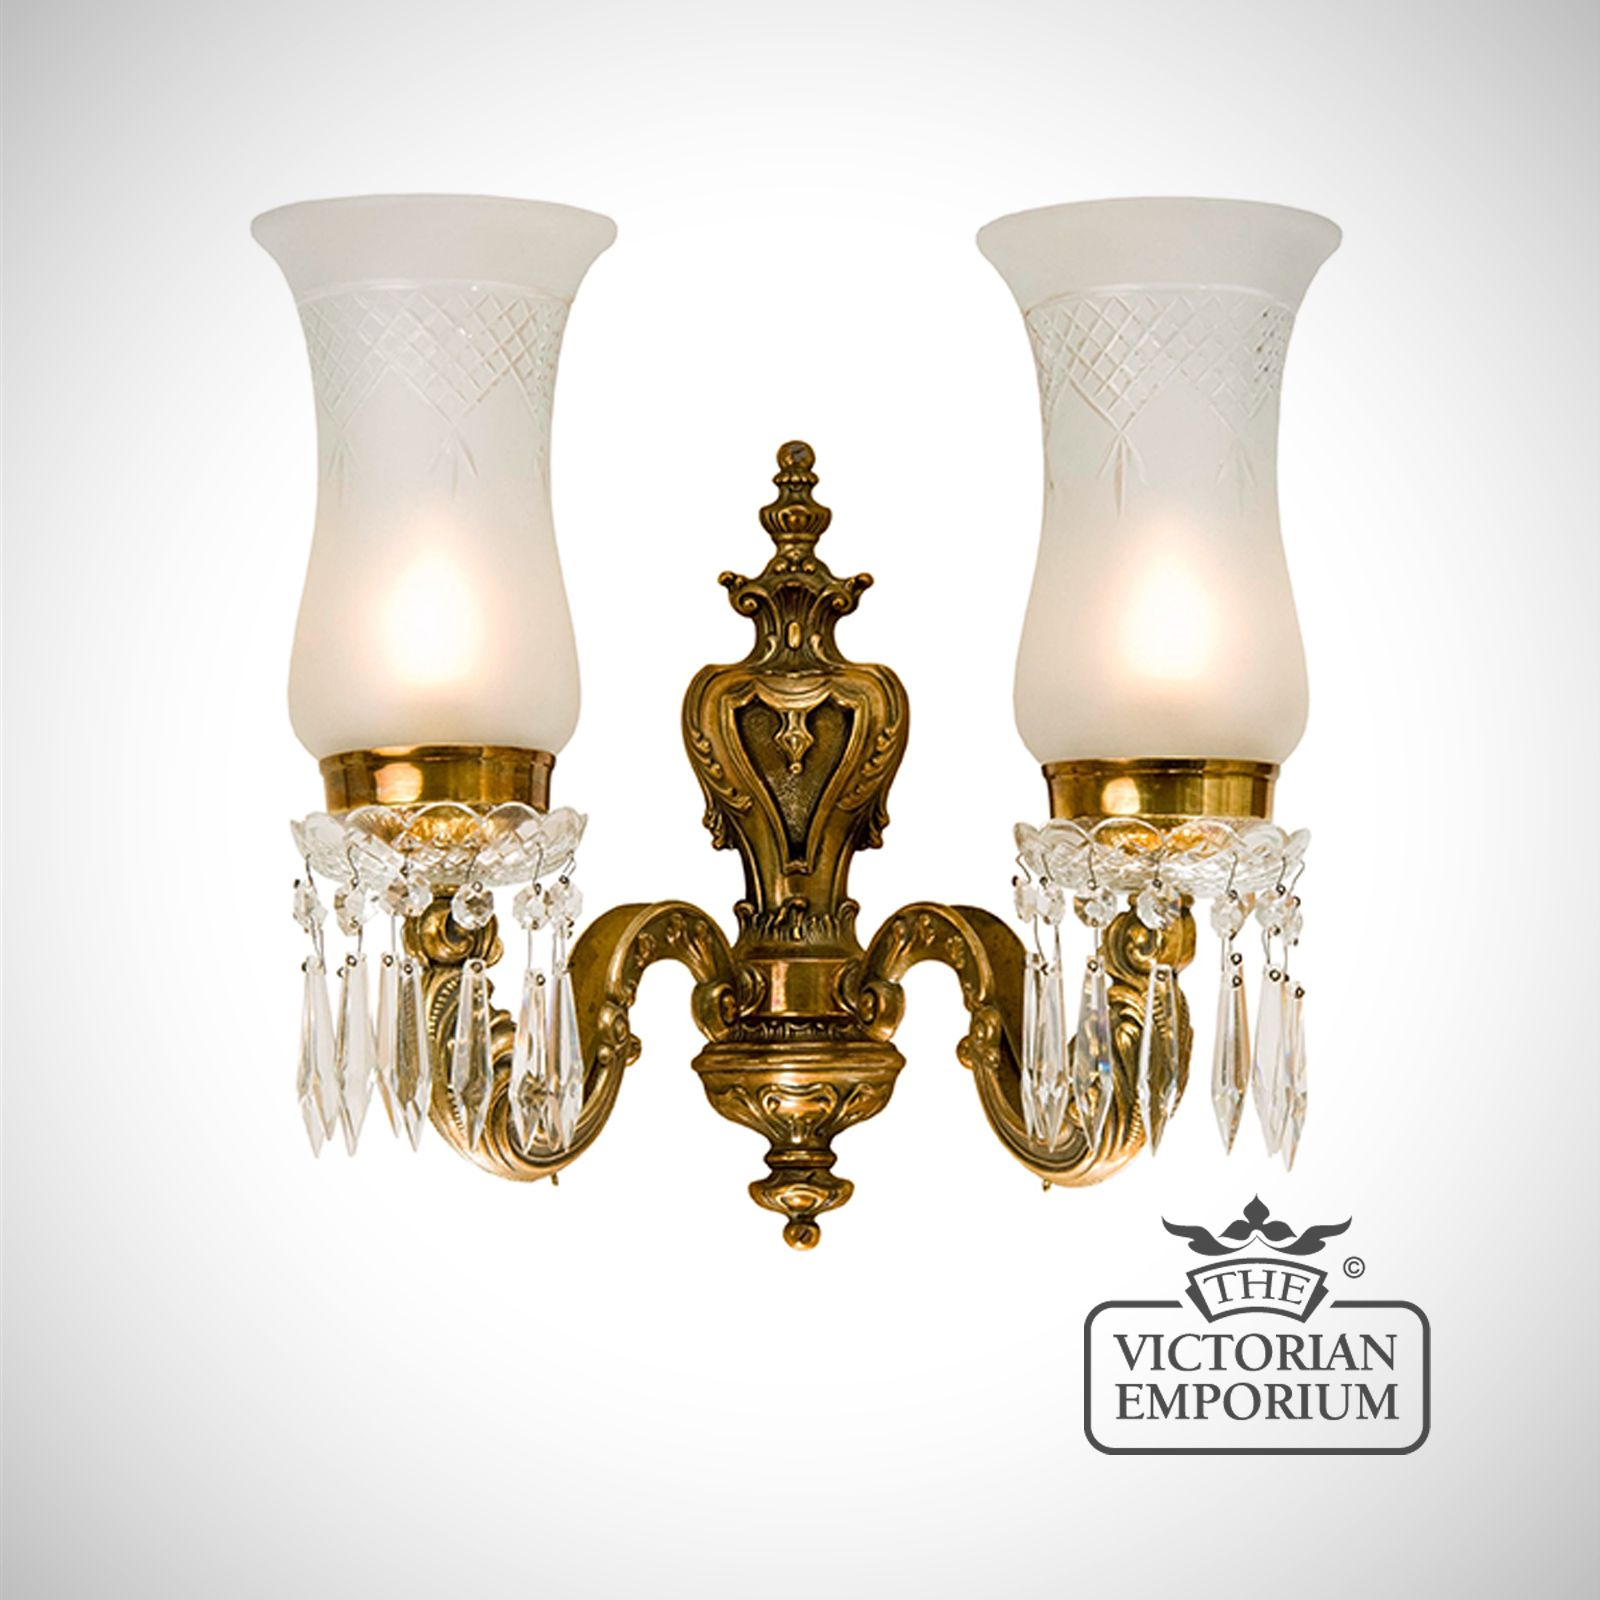 Wall Sconces Glass Shades : Double wall sconce with cut glass shades